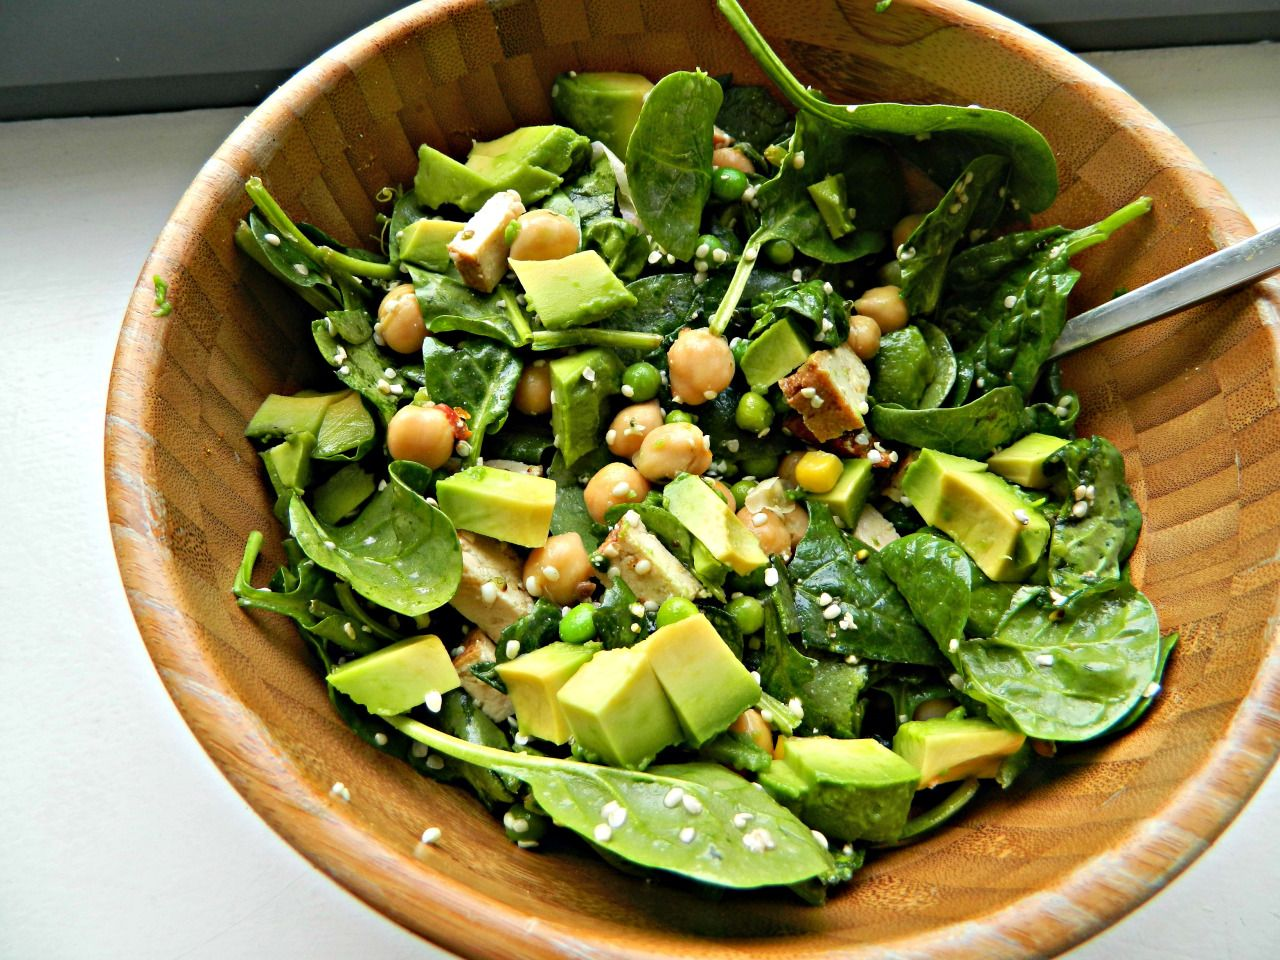 seedsnsmiles: Big salad with lots of spinach, chickpeas, peas, sweetcorn, smoked tofu, sundried tomatoes, hemp seeds and a lemon juice/extra virgin olive oil dressing, topped with half an avocado. :)